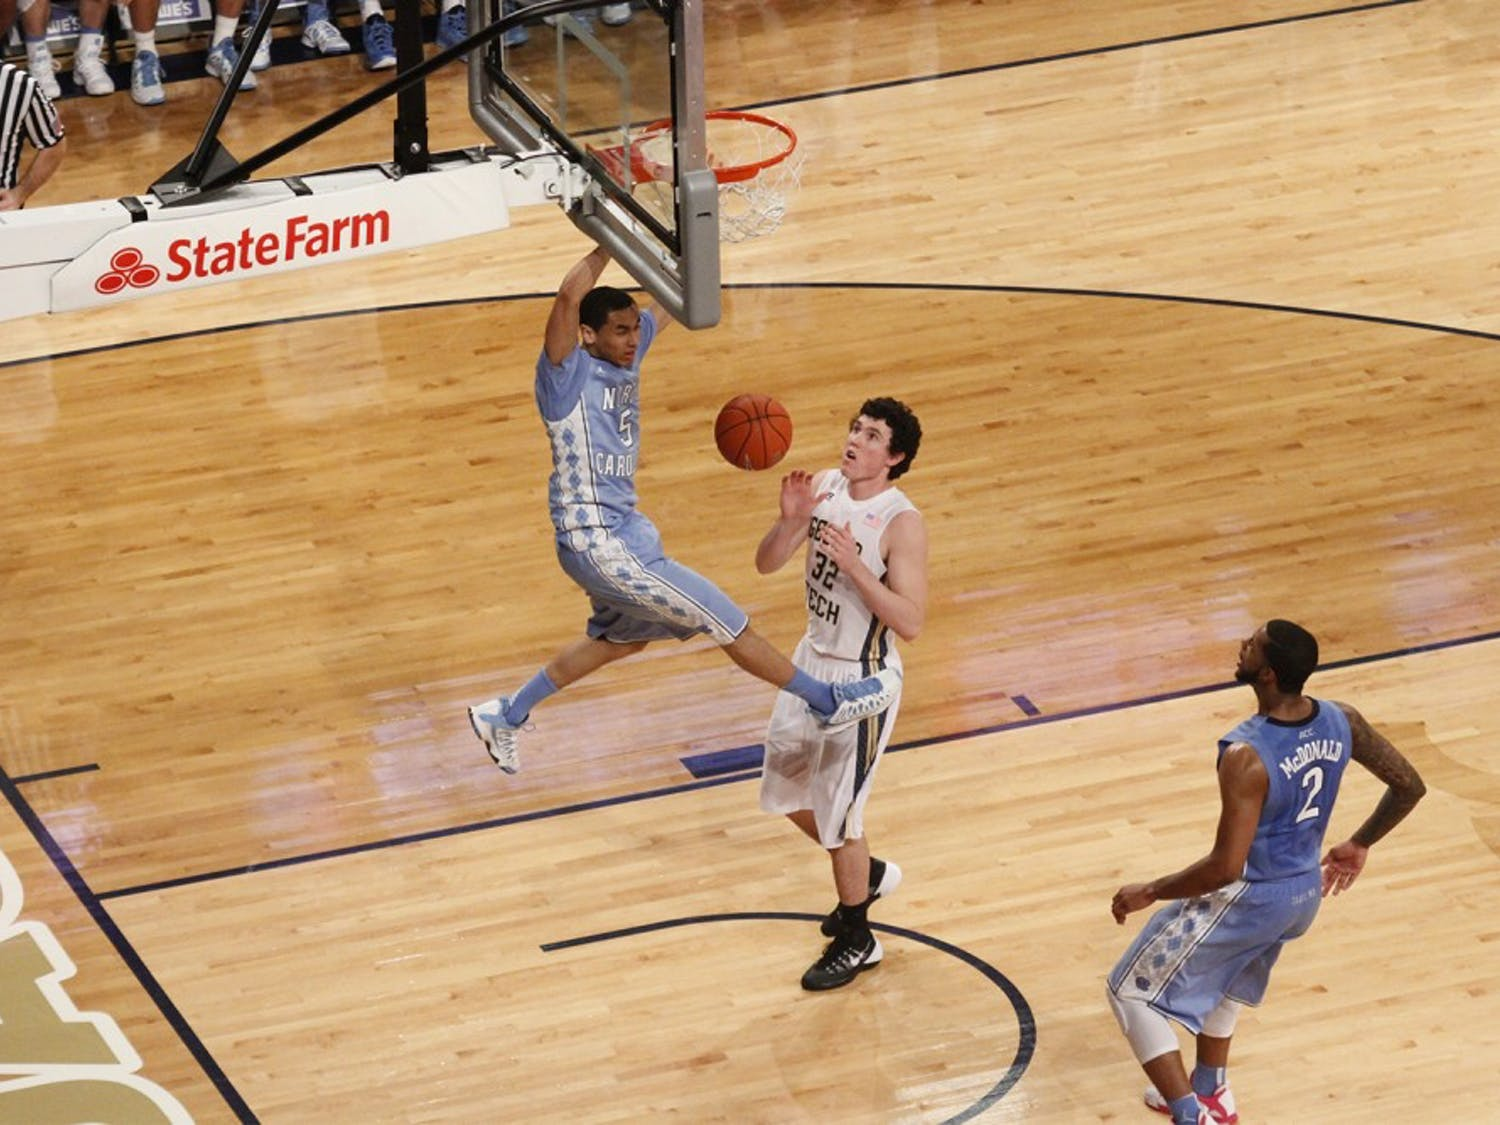 UNC guard Marcus Paige dunks in a game against Georgia Tech. The Tar Heels beat Georgia Tech away 78-65 on Jan. 29, 2014.